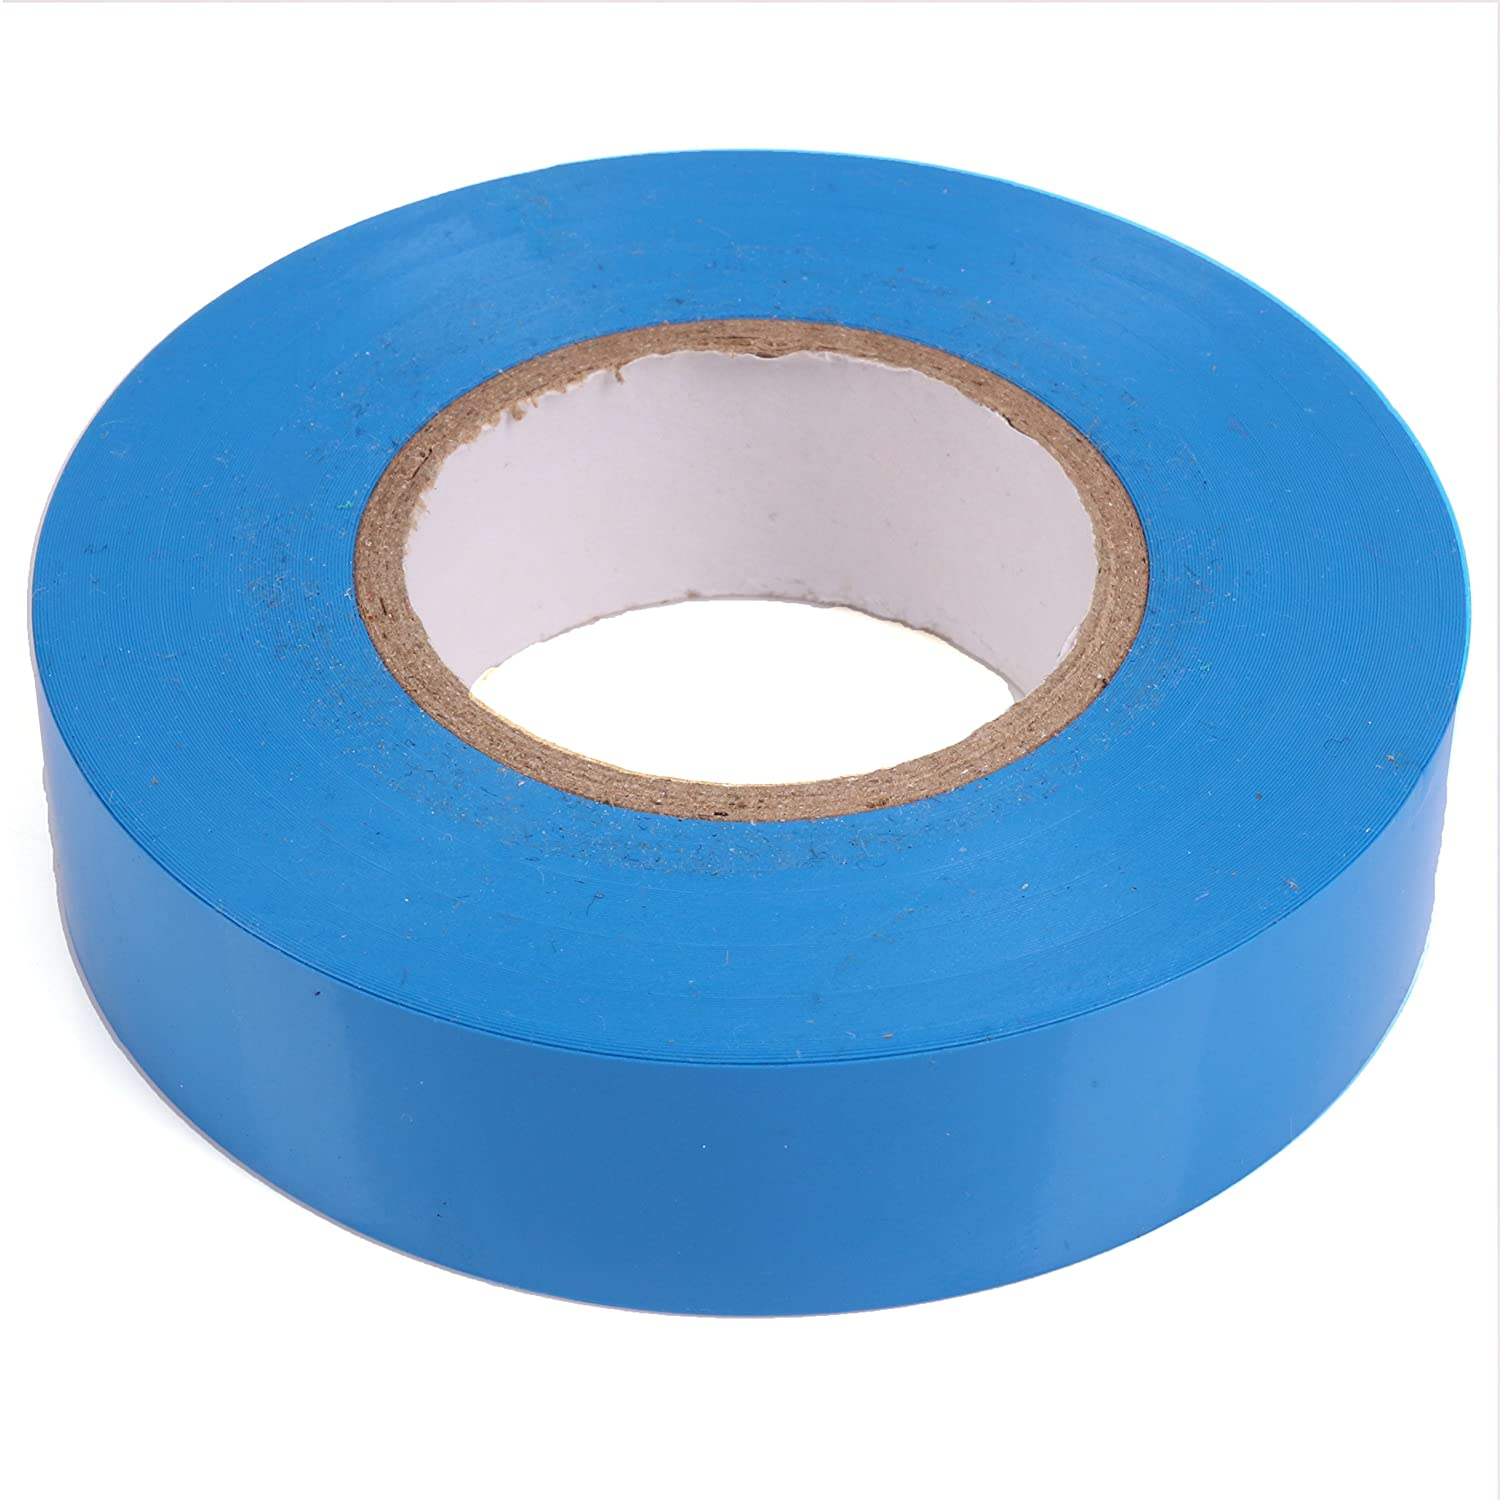 19mm Blue Insulation Tape PVC Electricians 20m Roll (Pack of 5) White Hinge